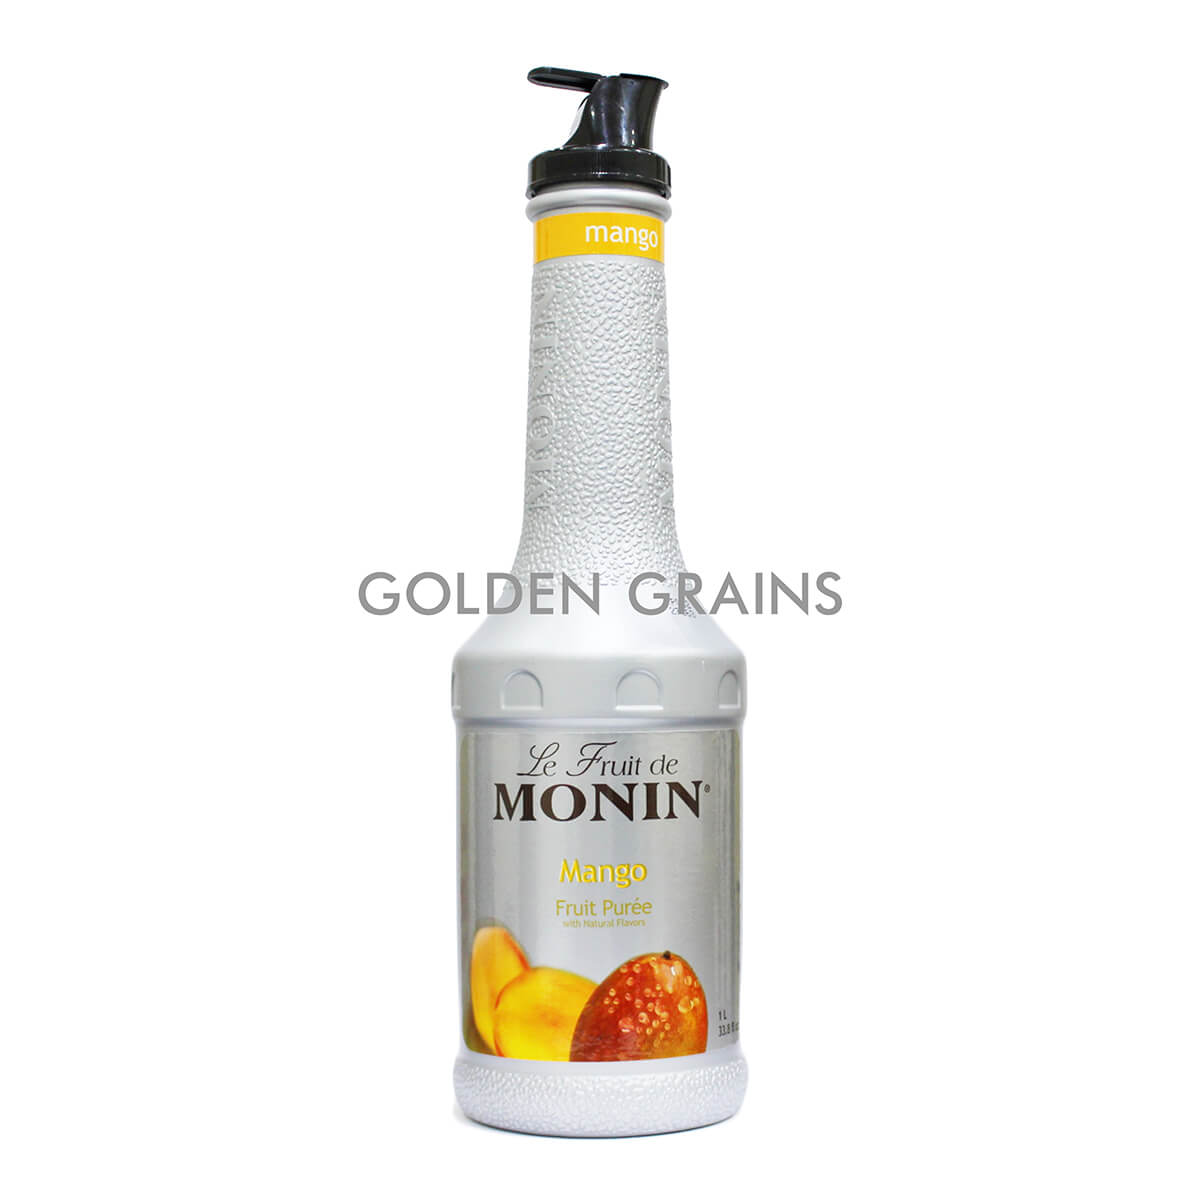 Golden Grains Monin - Mango Puree - Front.jpg